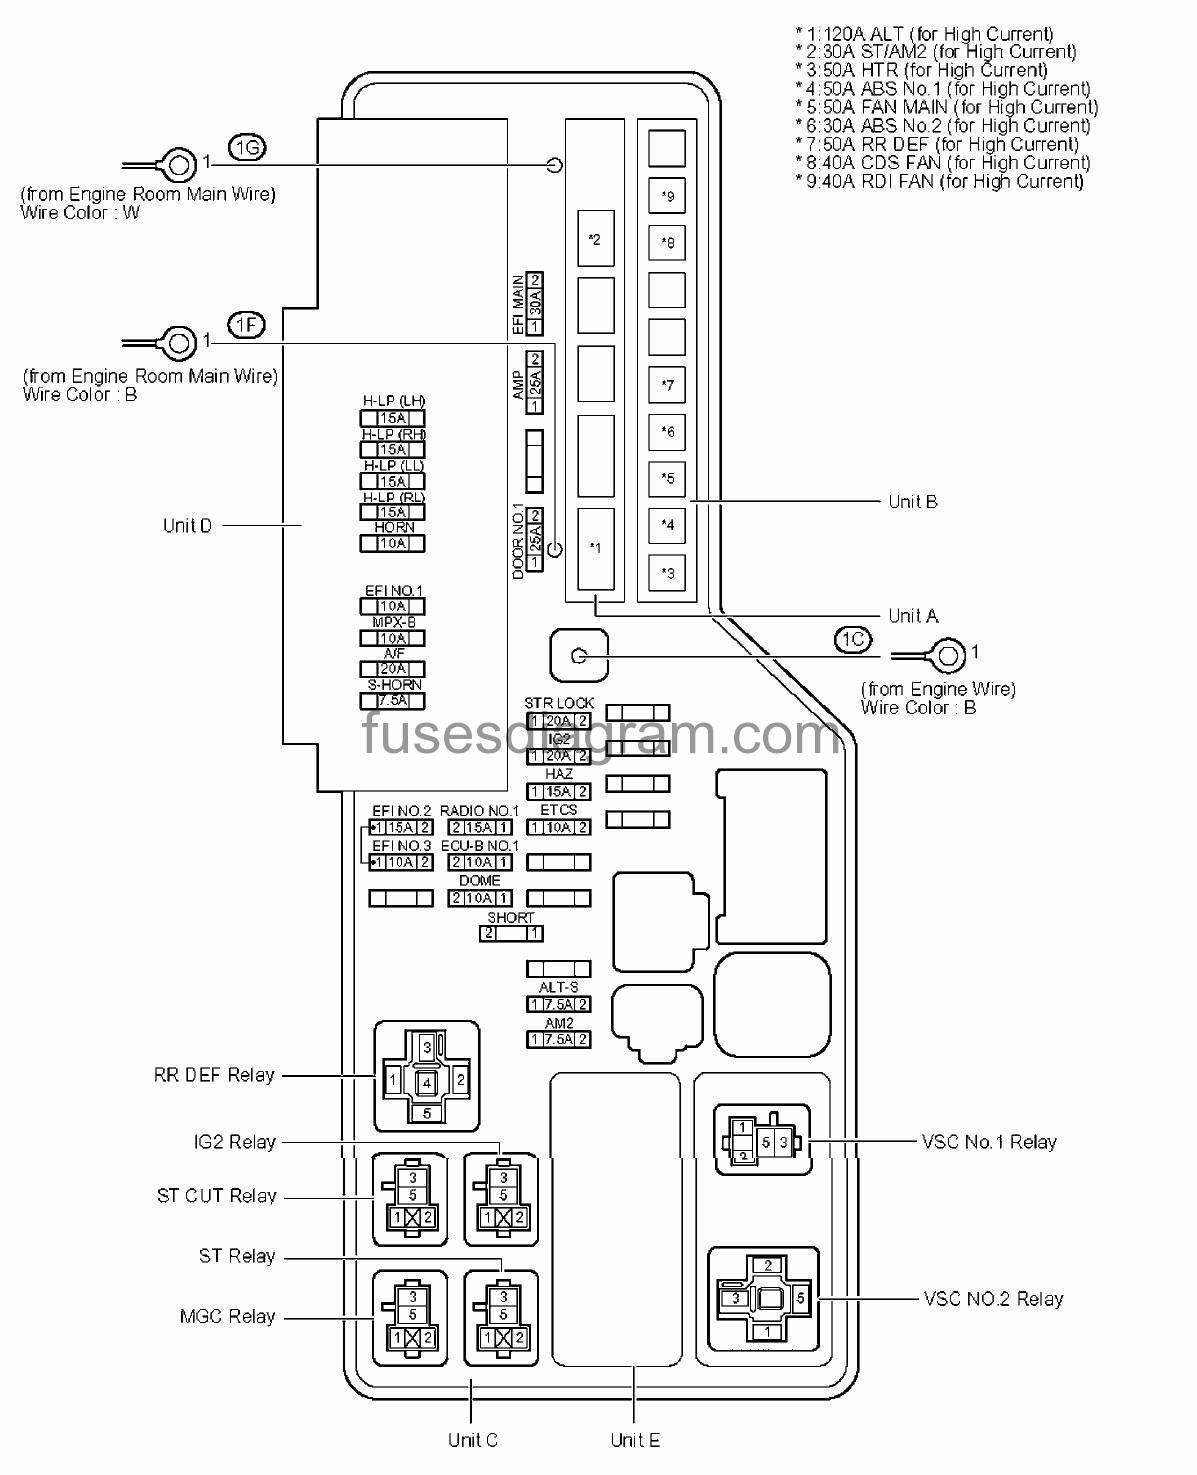 1998 Toyotum Camry Engine Bay Fuse Box 98 Audi Wiring 01 2 Cooling Fans Ac Diagram